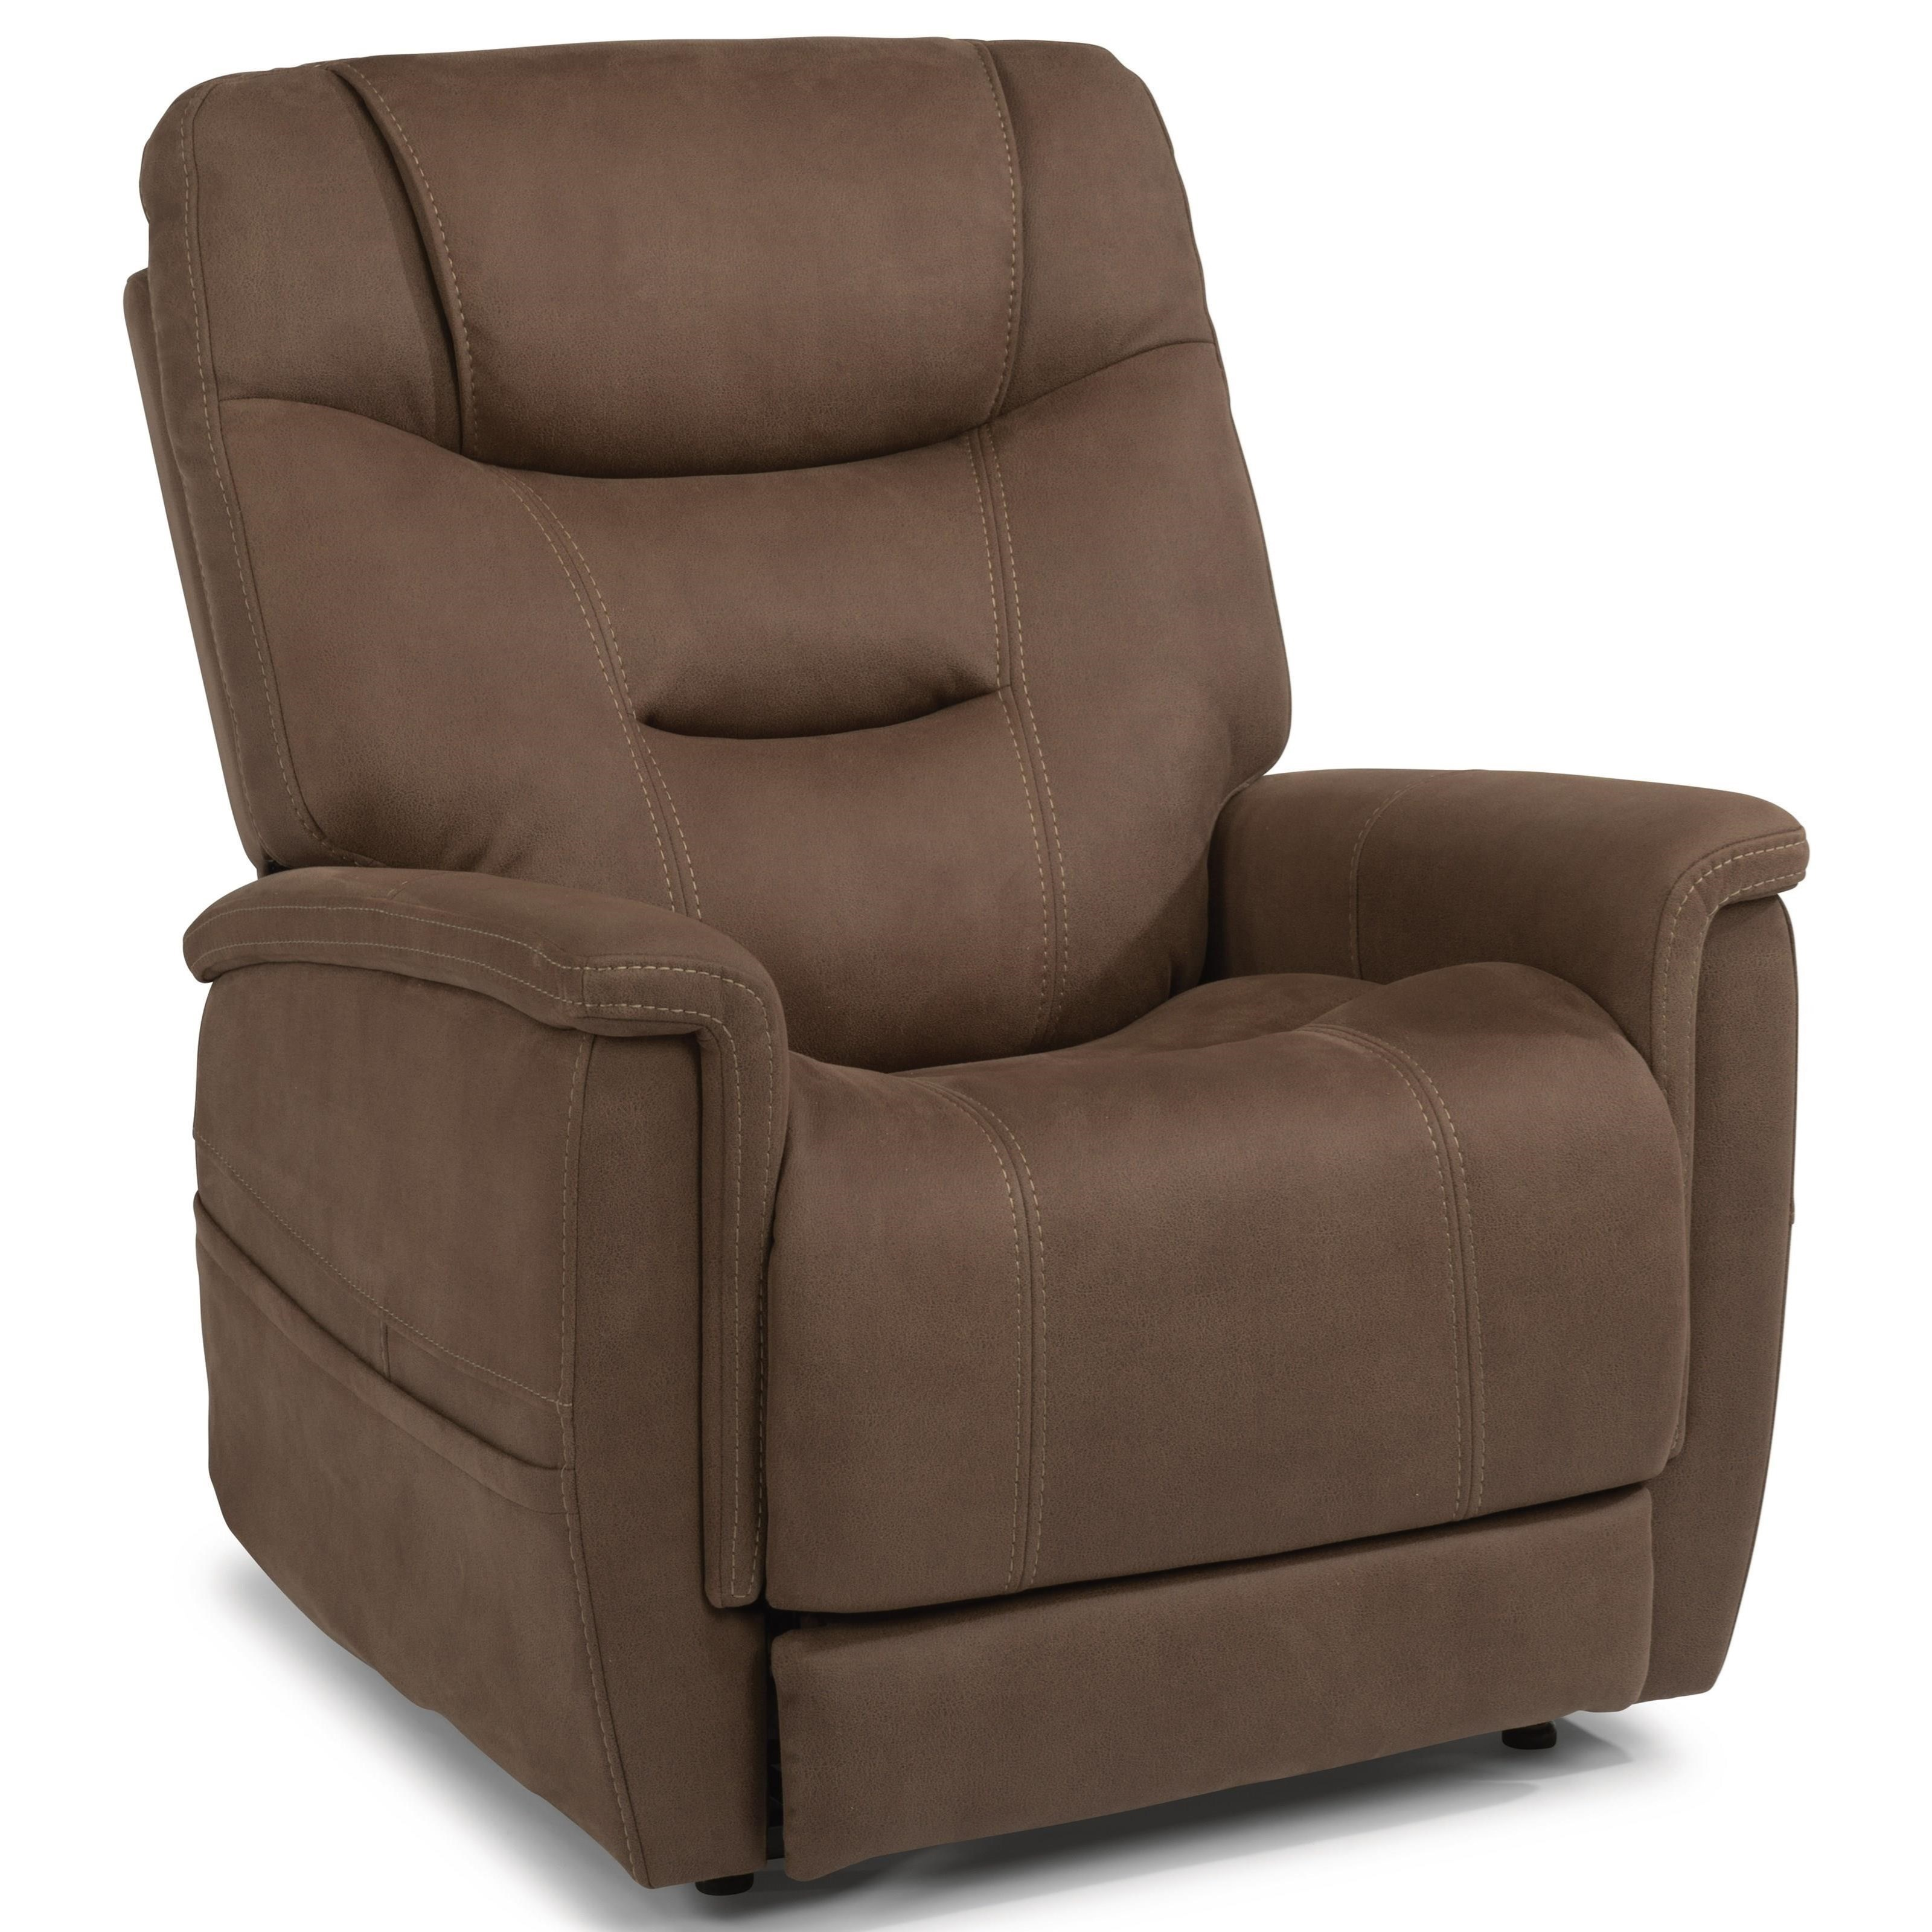 Latitudes - Shaw Power Lift Recliner by Flexsteel at Walker's Furniture